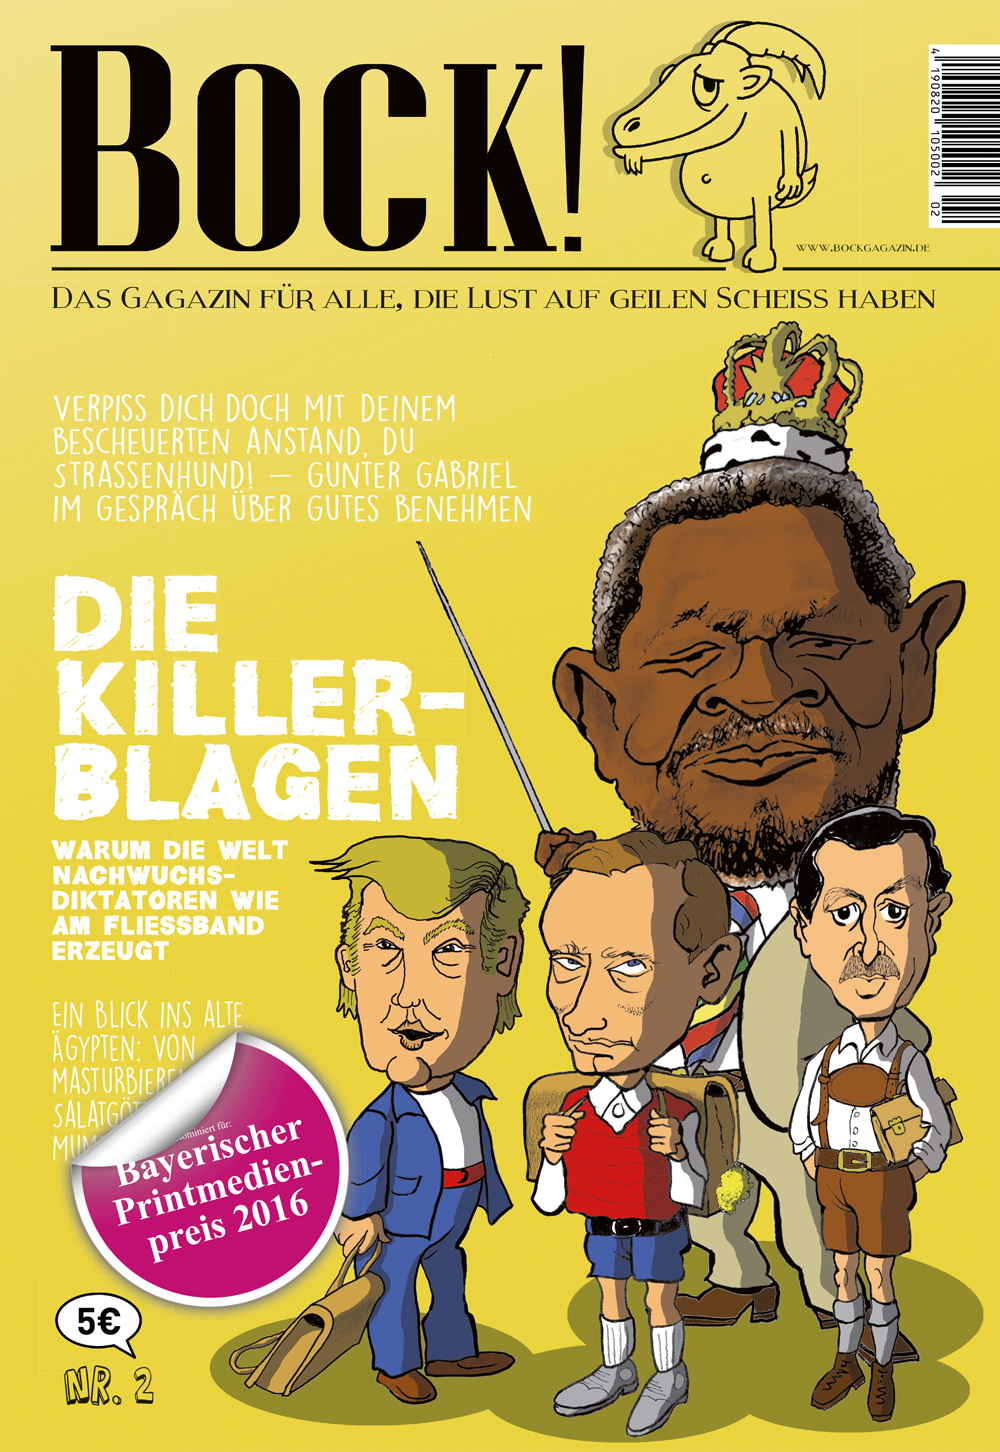 Bock_Cover_2.indd